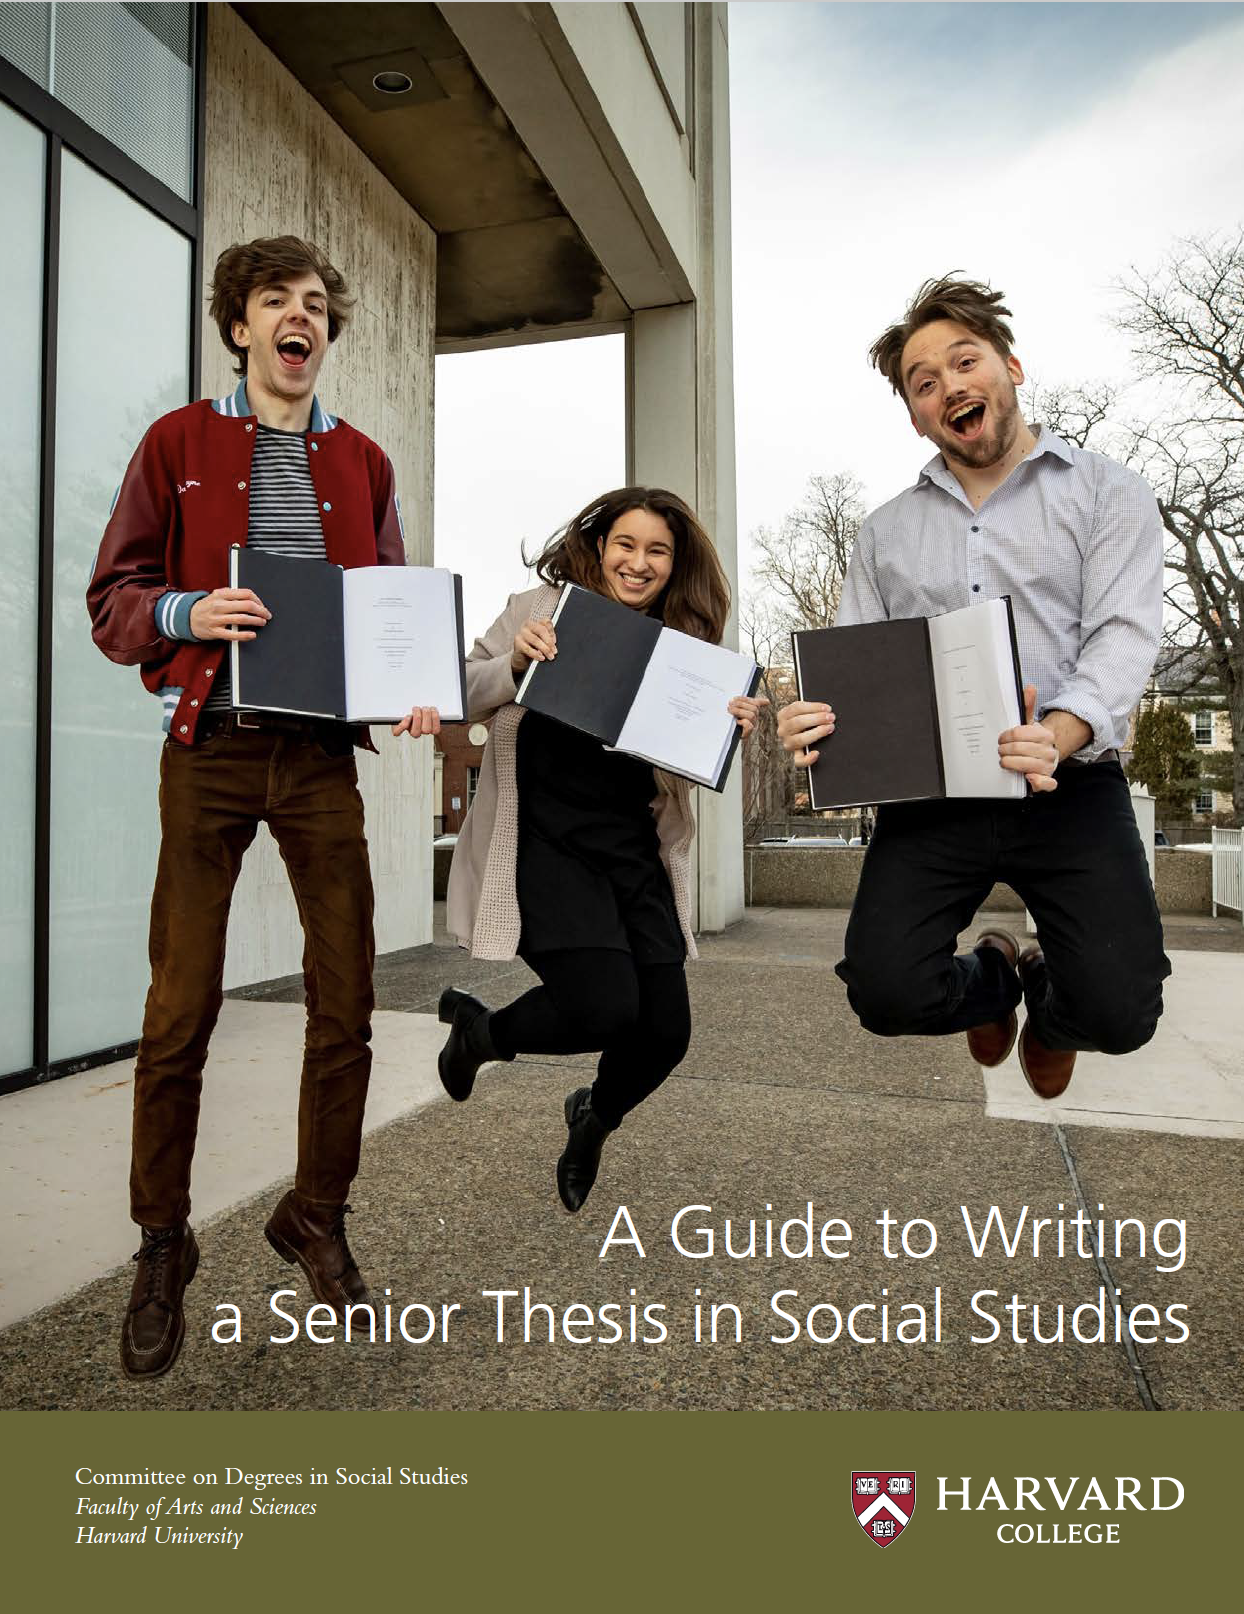 thesis guide cover